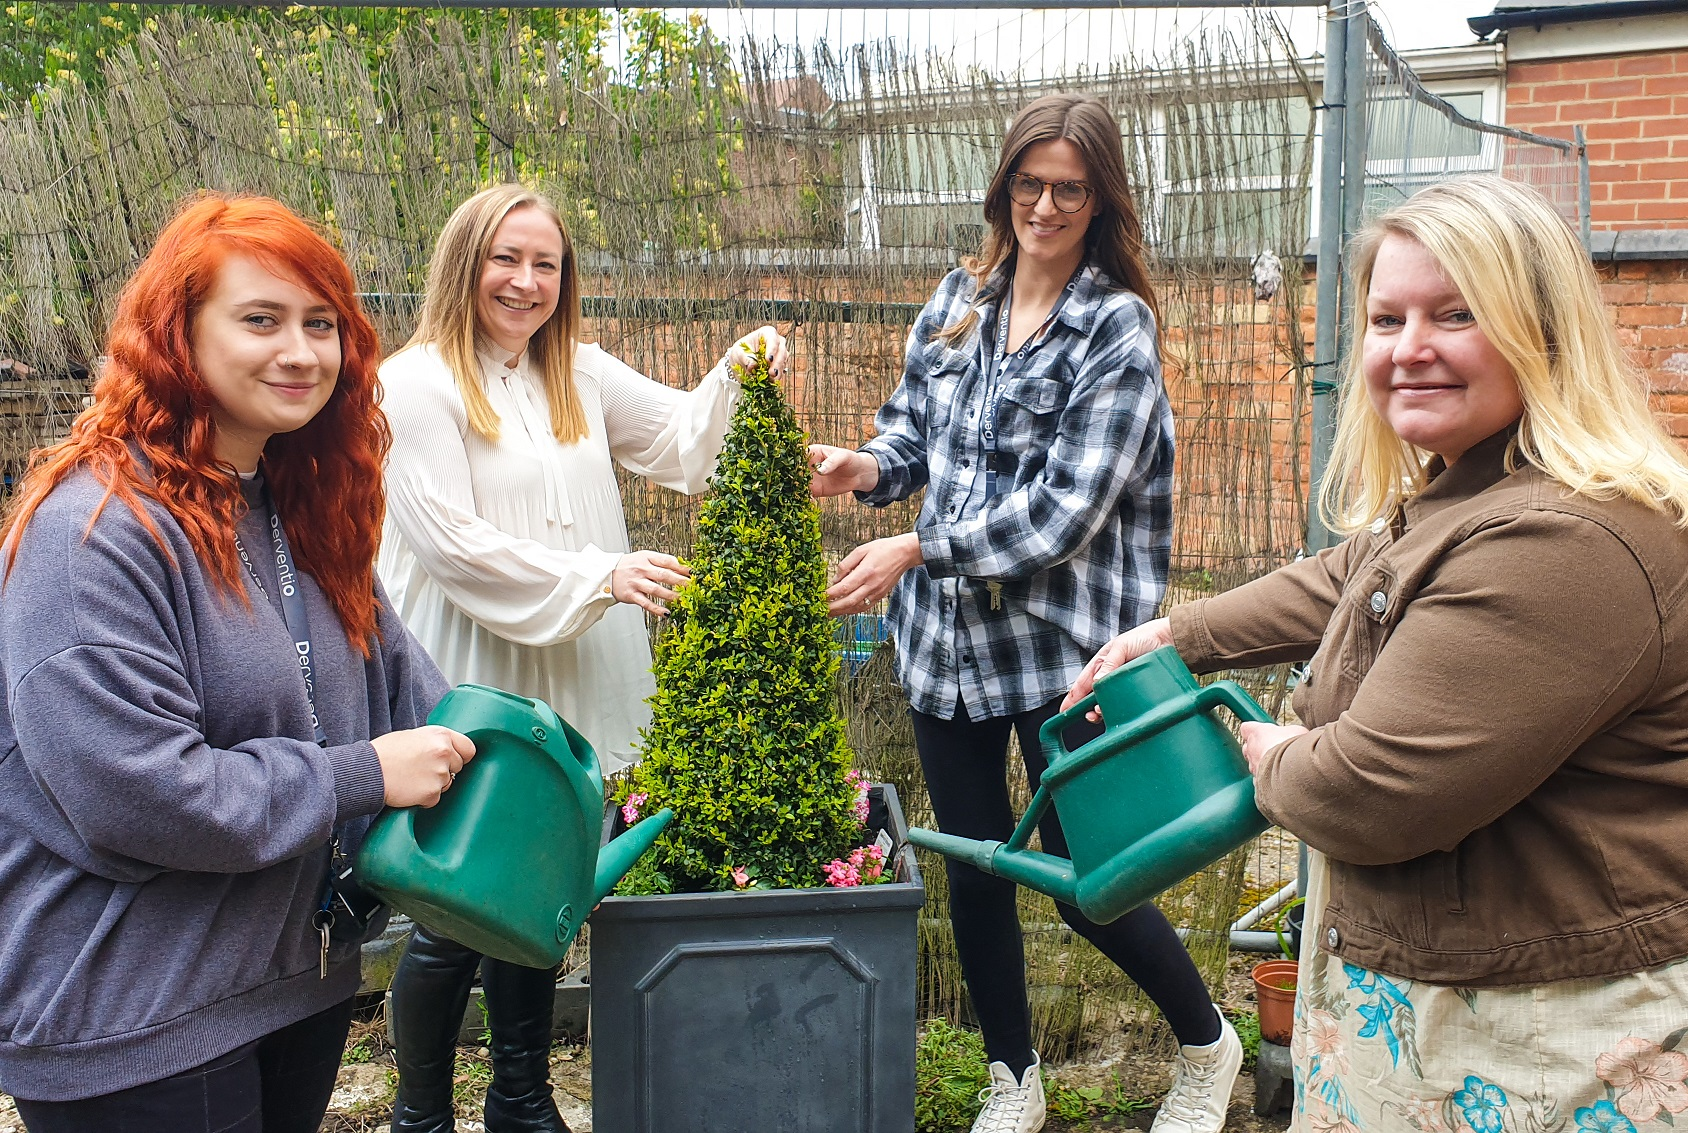 Floral display all set to brighten lives and raise spirits at Derventio Housing Trust's Junction